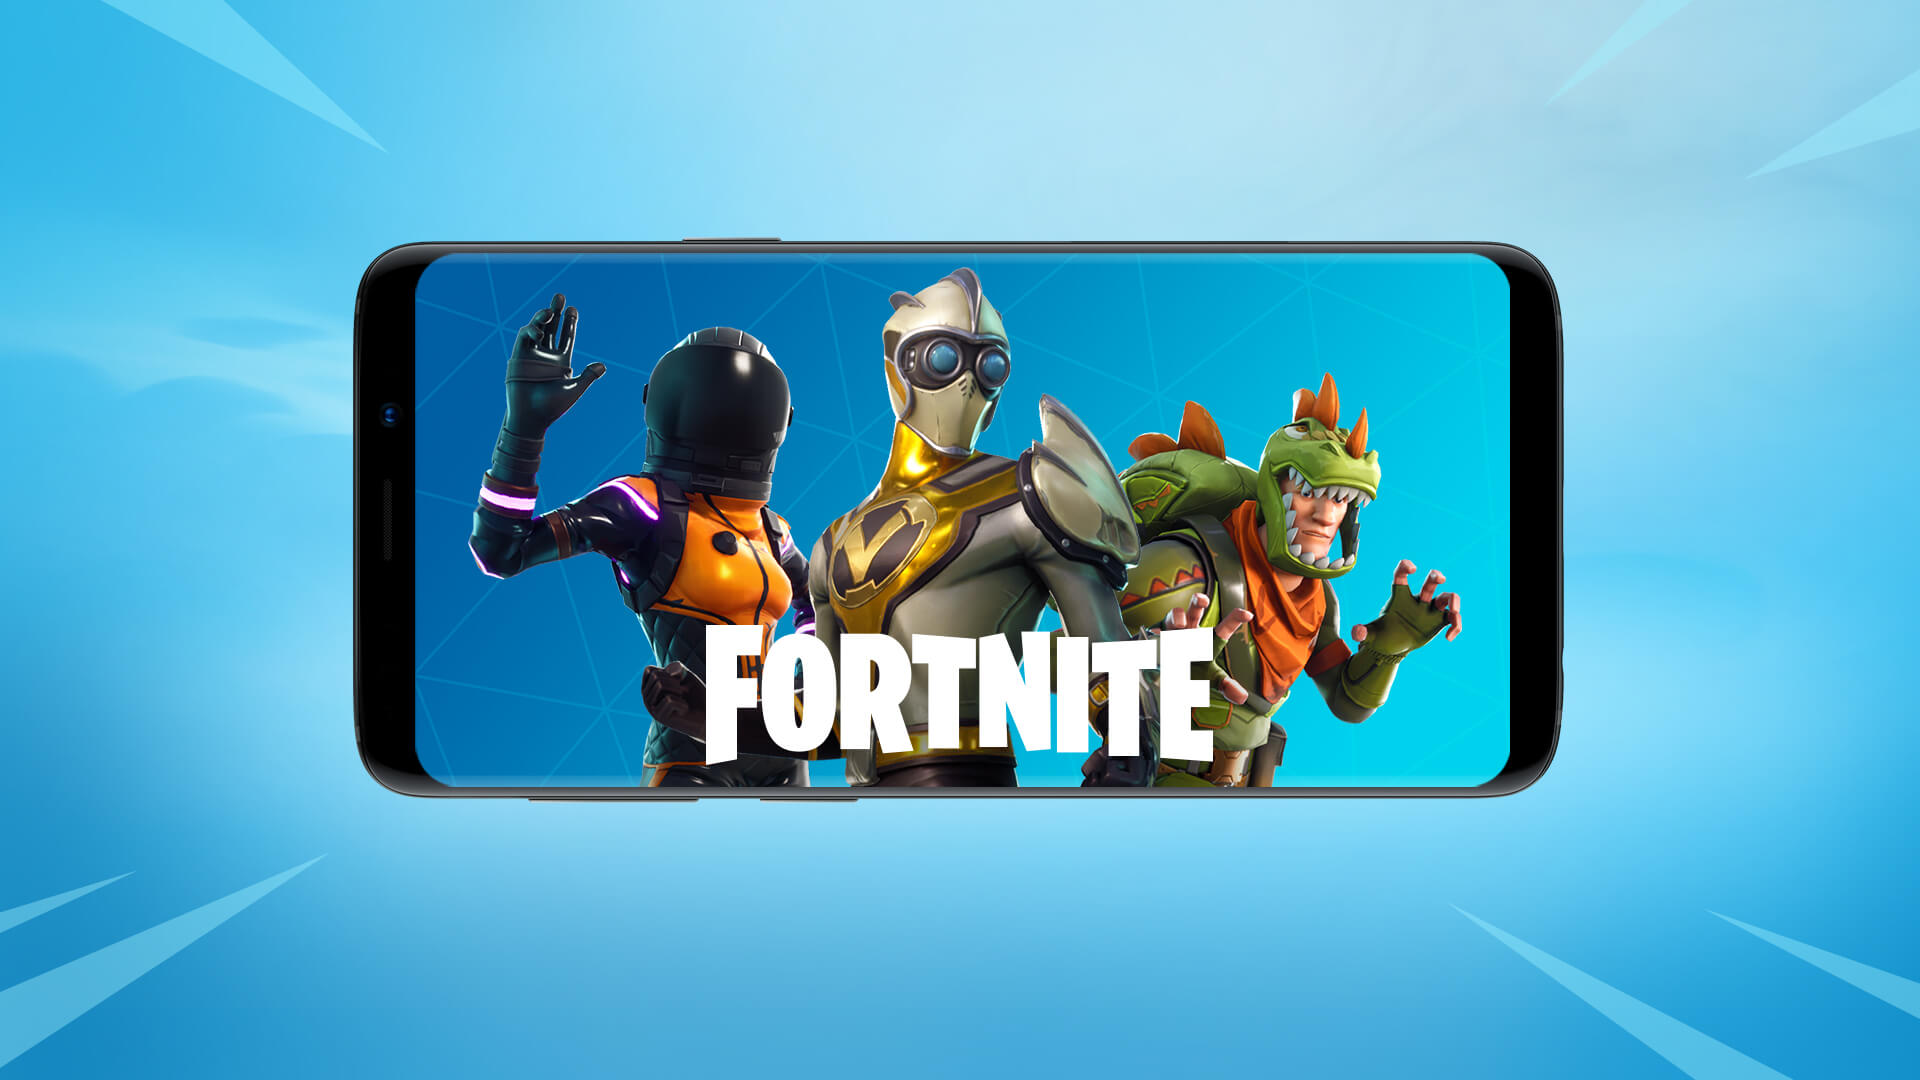 - epic games fortnite smartphone